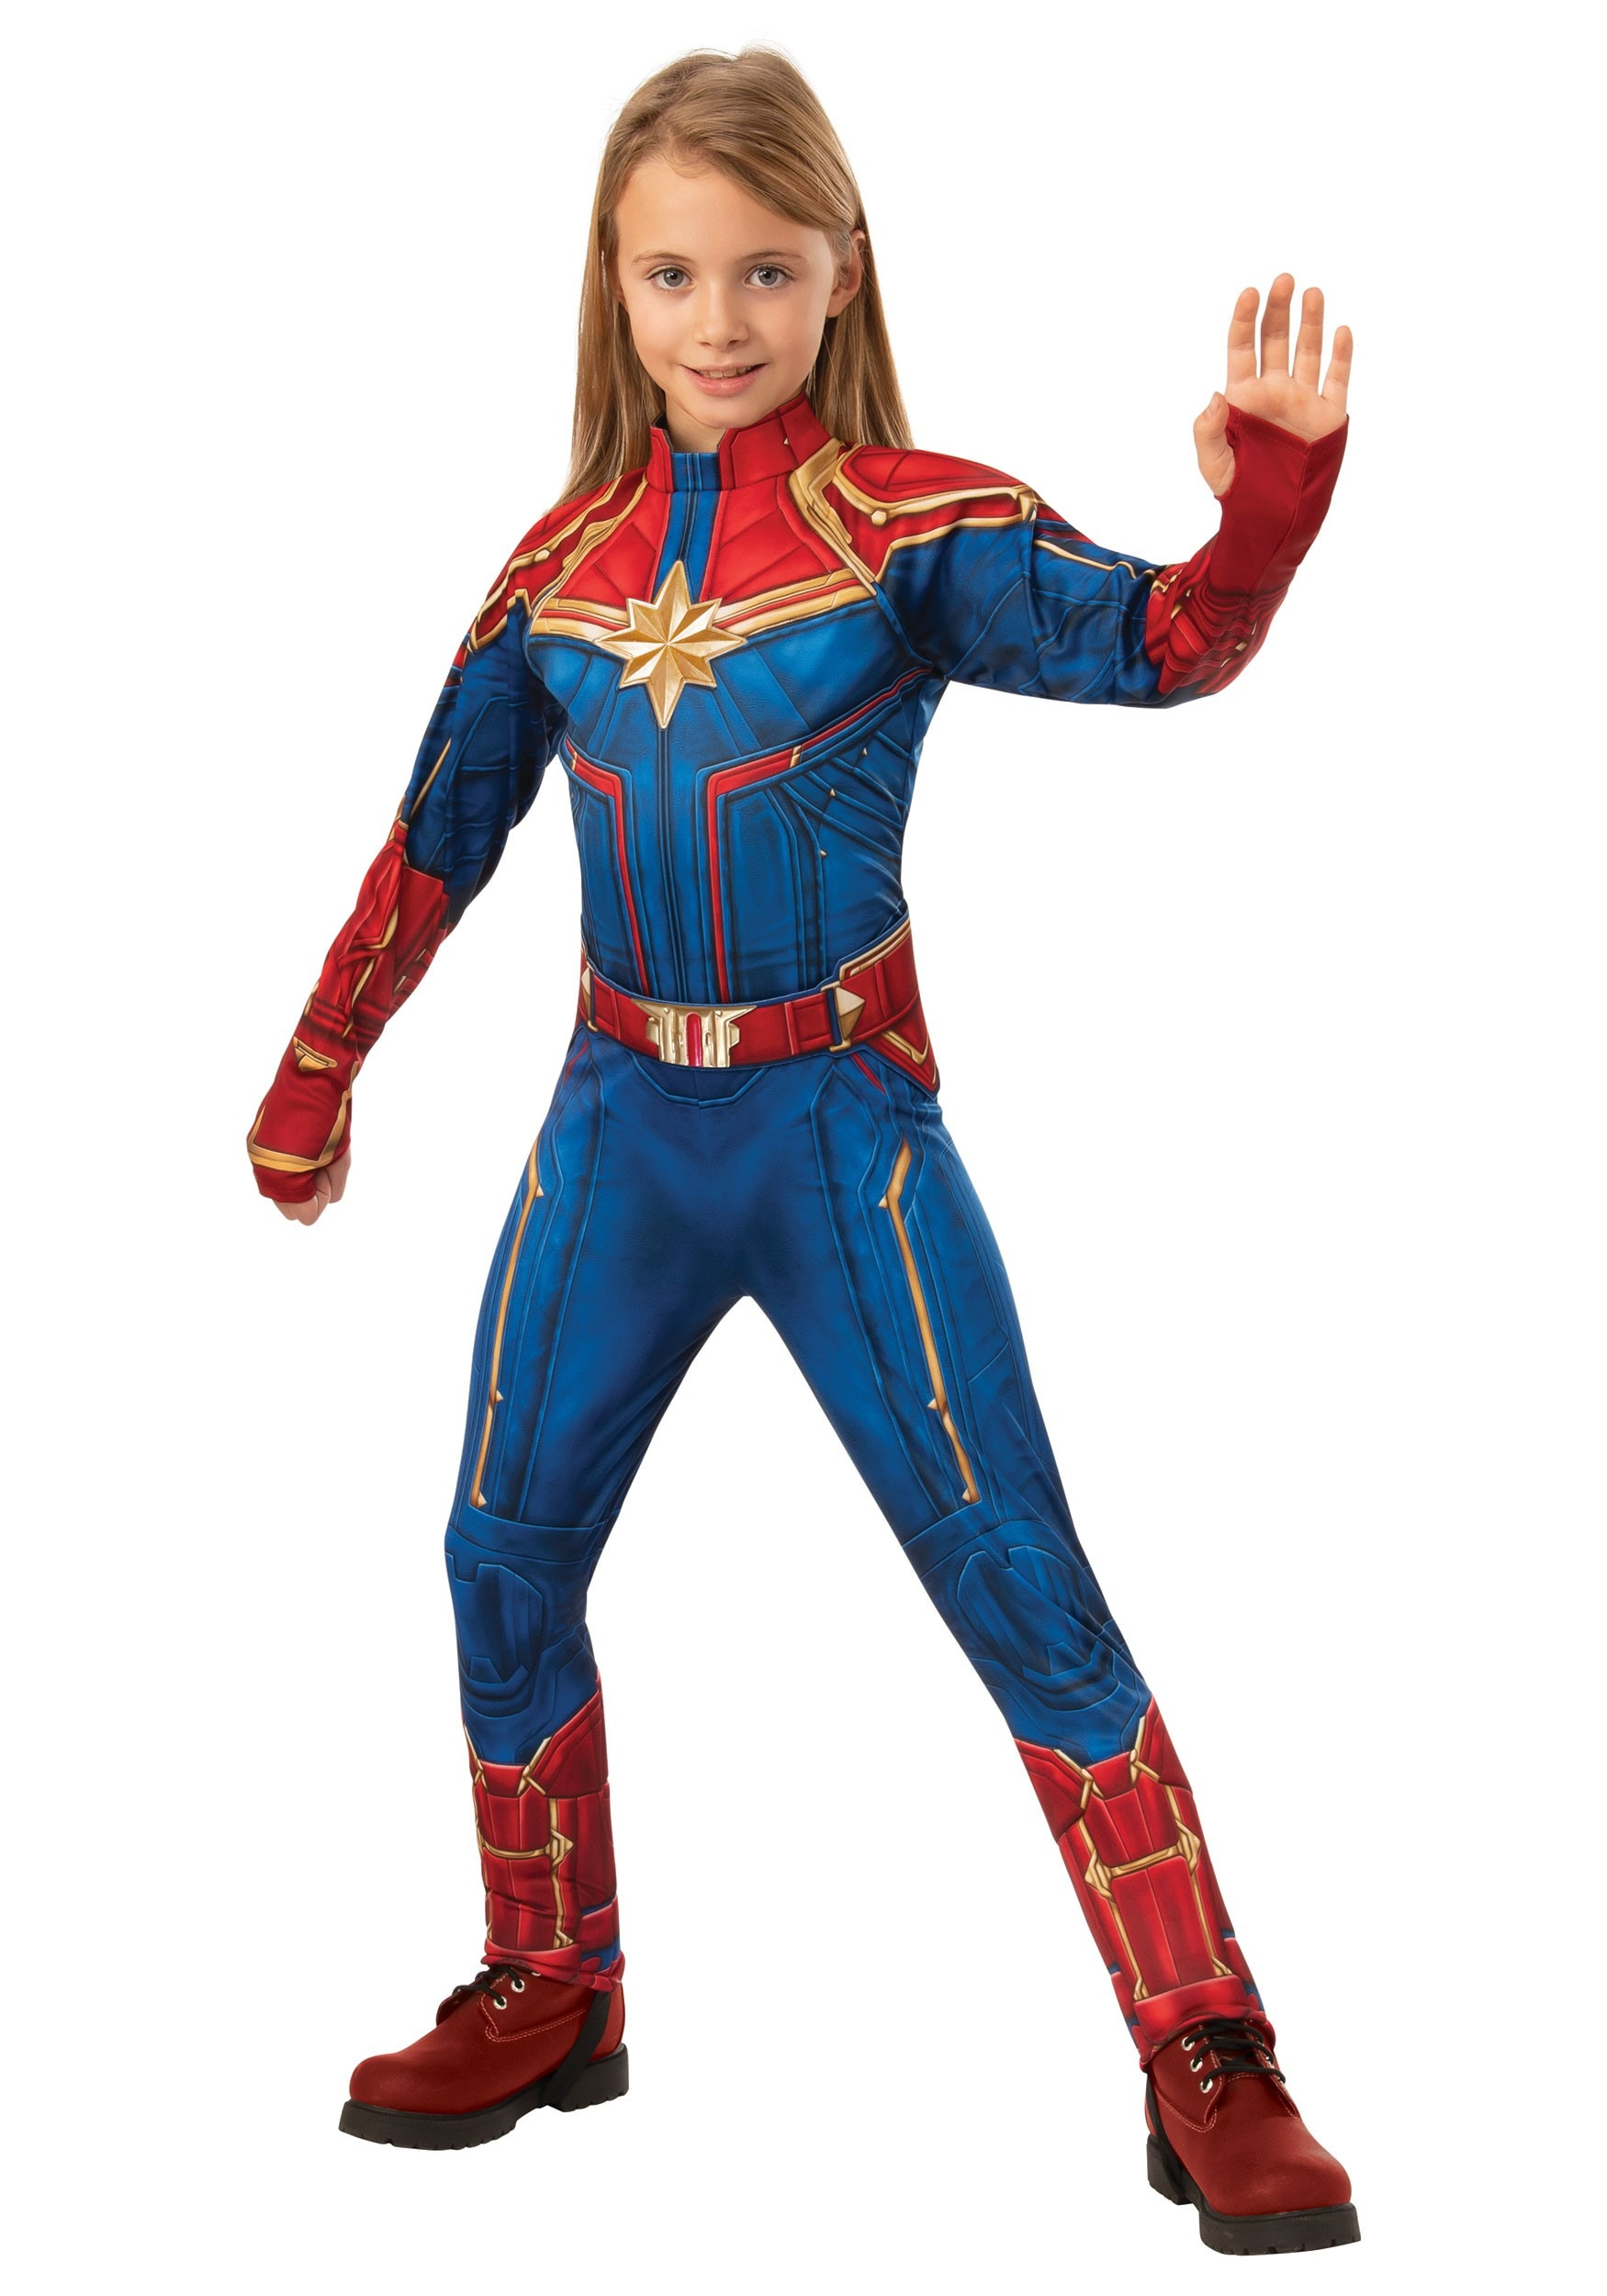 Captain Marvel Deluxe Child Costume Girl Superhero Costumes Great quality suit very comfortable and lightweight. deluxe captain marvel child costume